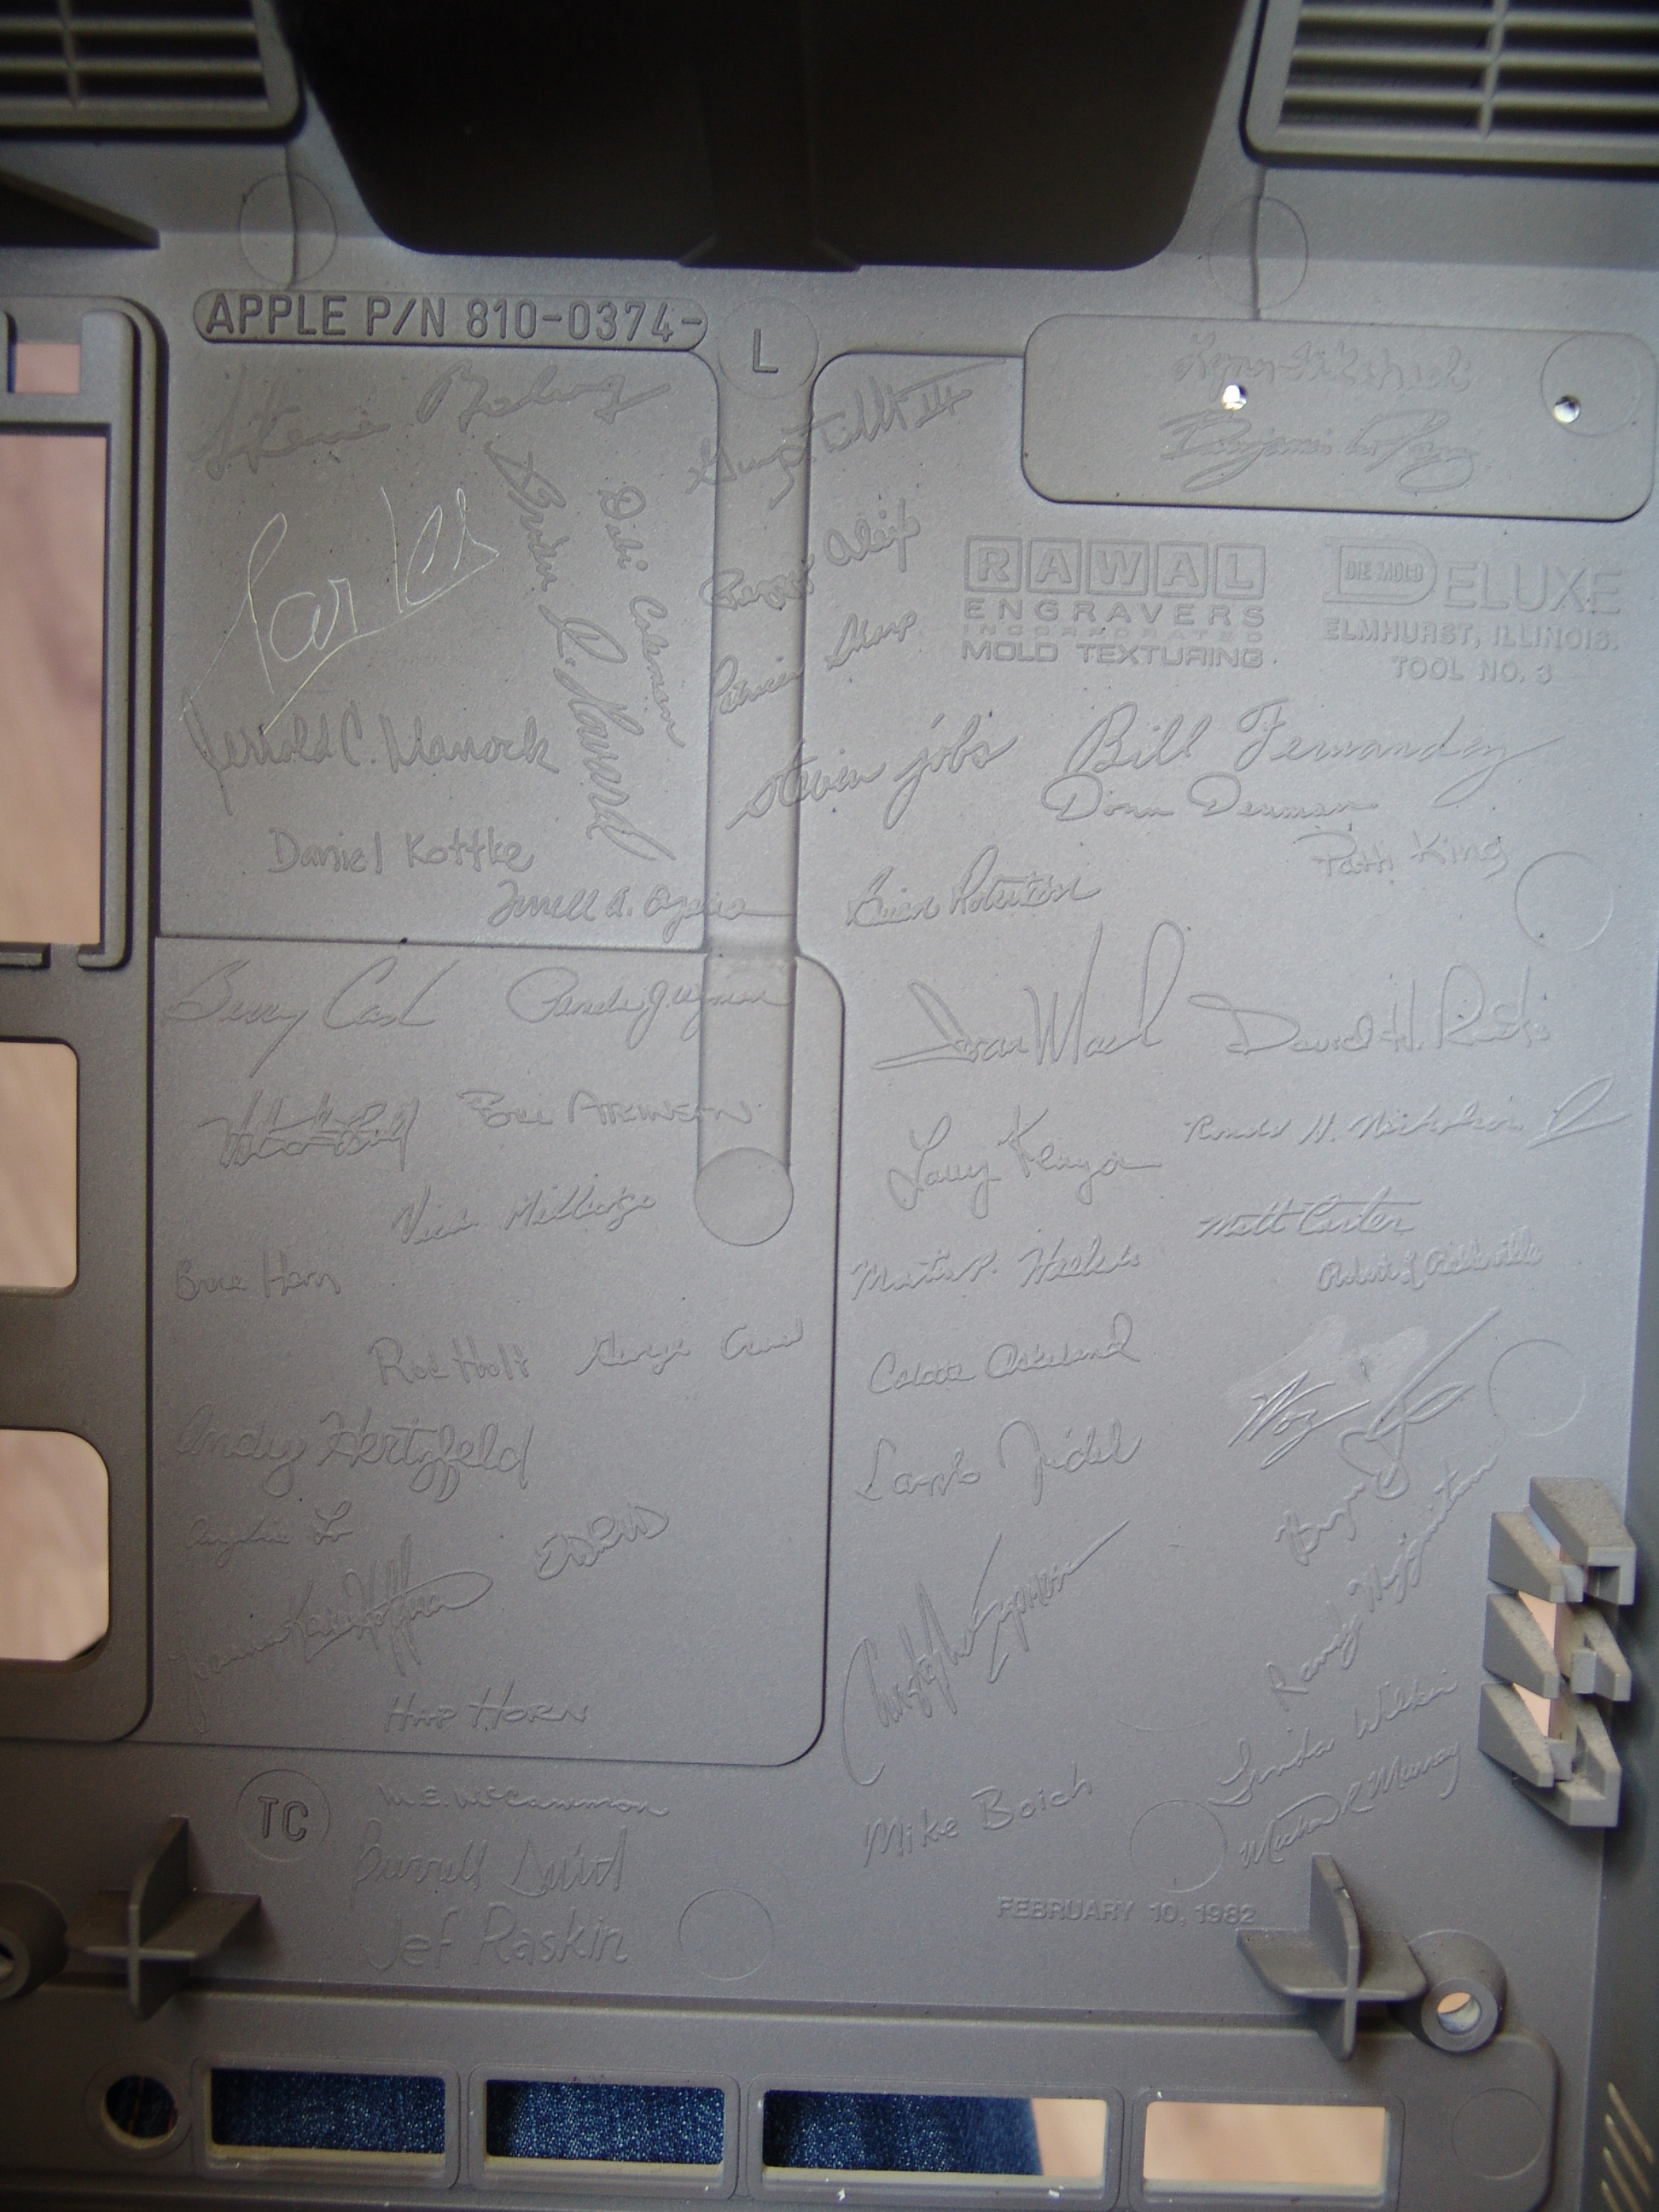 For the record, the very first Macintosh had the engineers' signature molded into its central unit case. Not one, not few, all 48 of them including Wozniak and Jobs themselves.